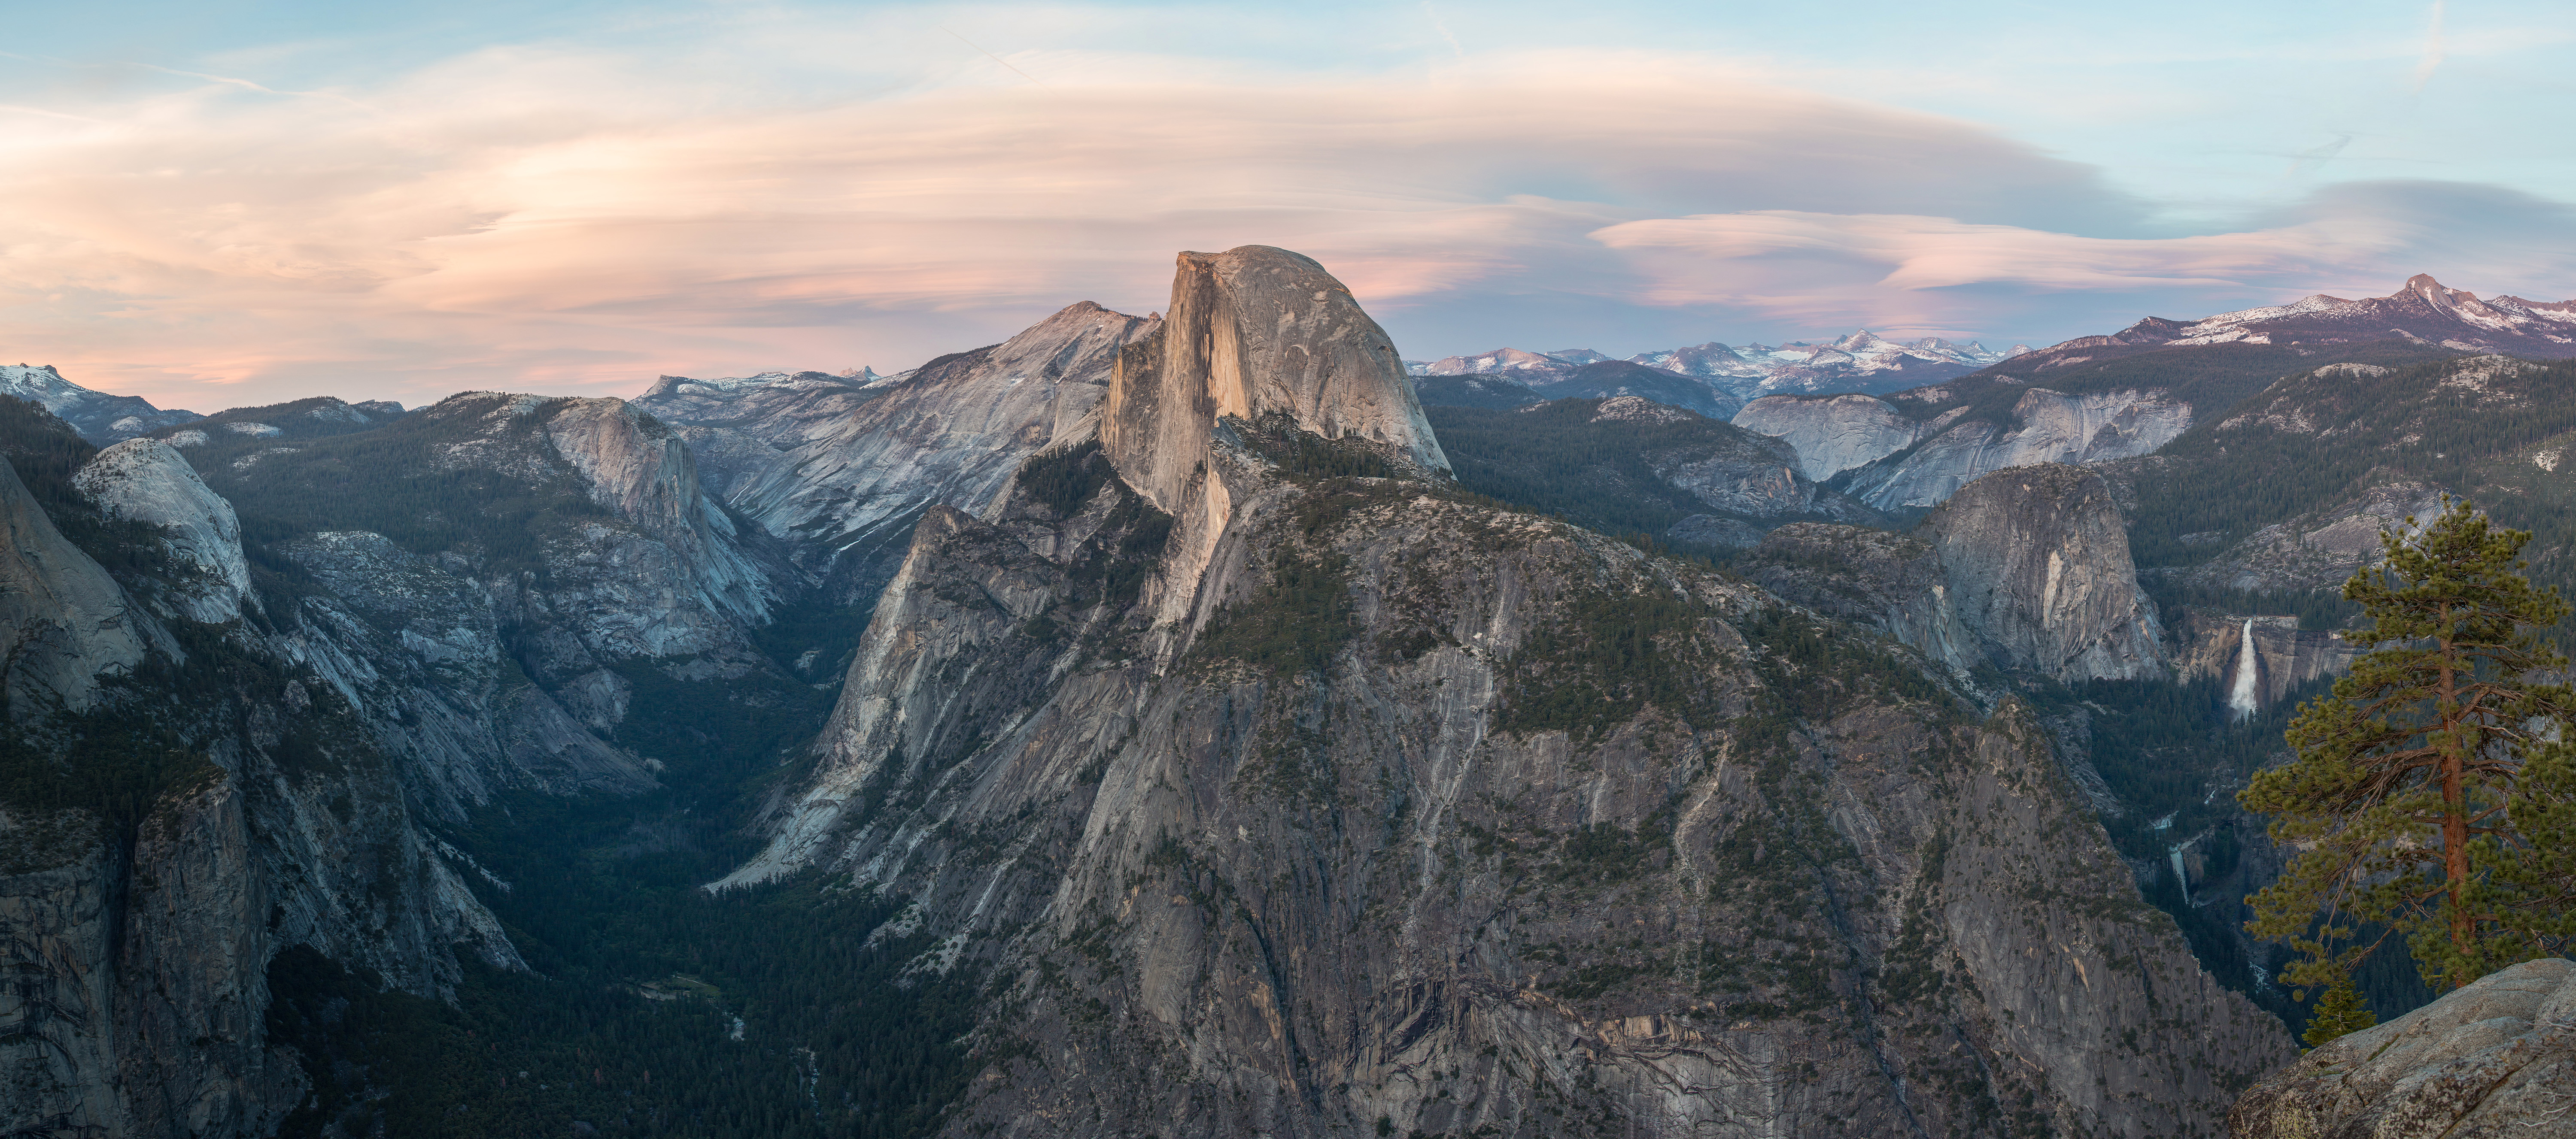 Glacier Point Sunset Yosemite Best Hikes